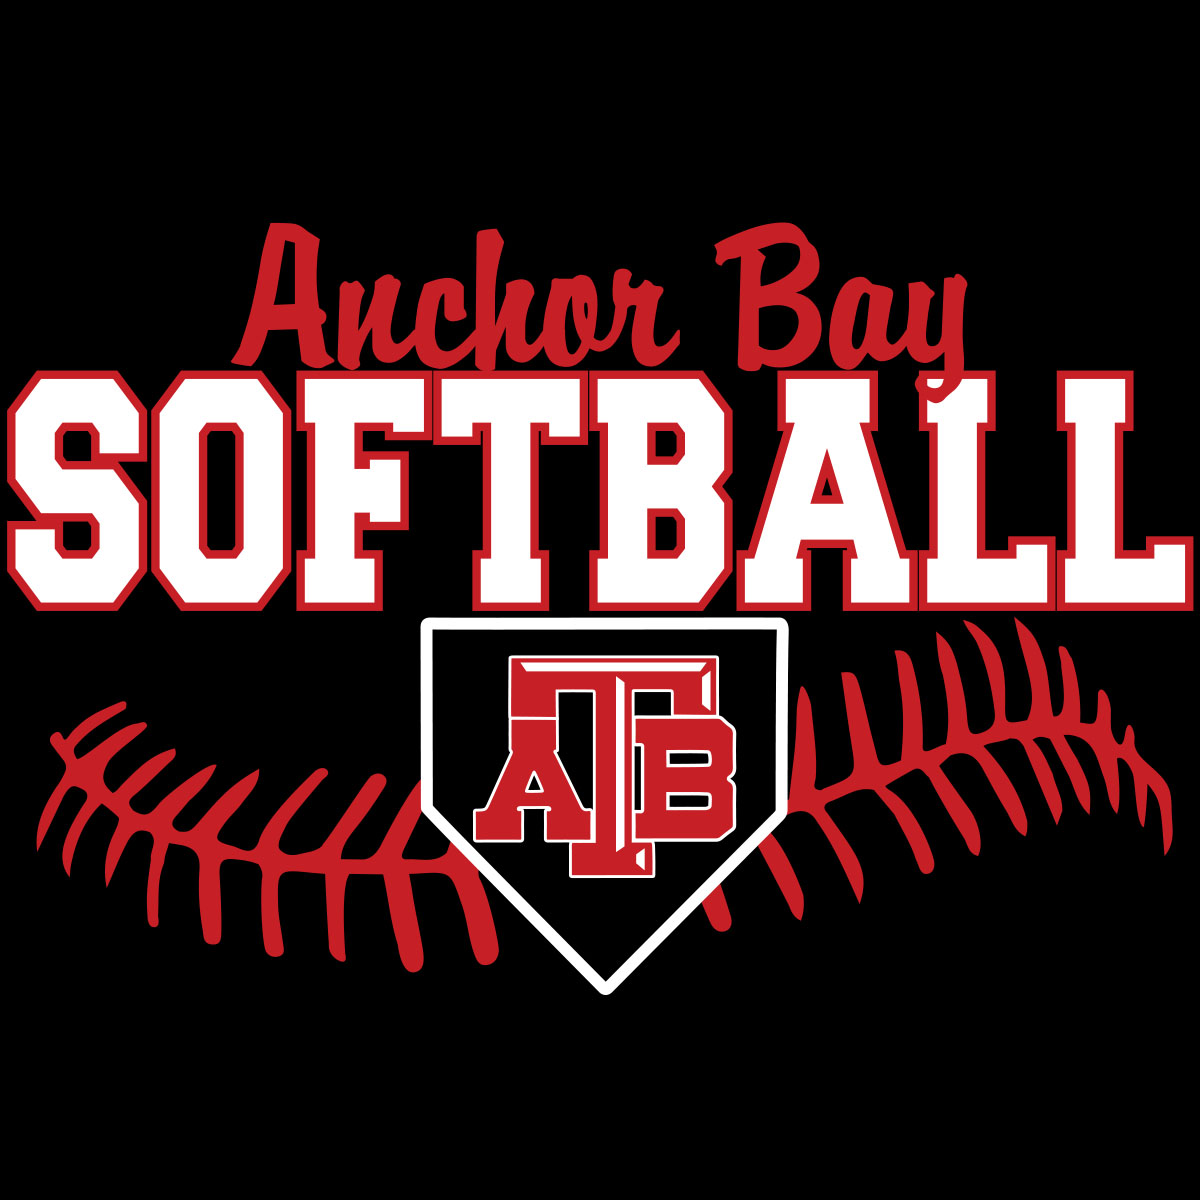 Anchor Bay Softball